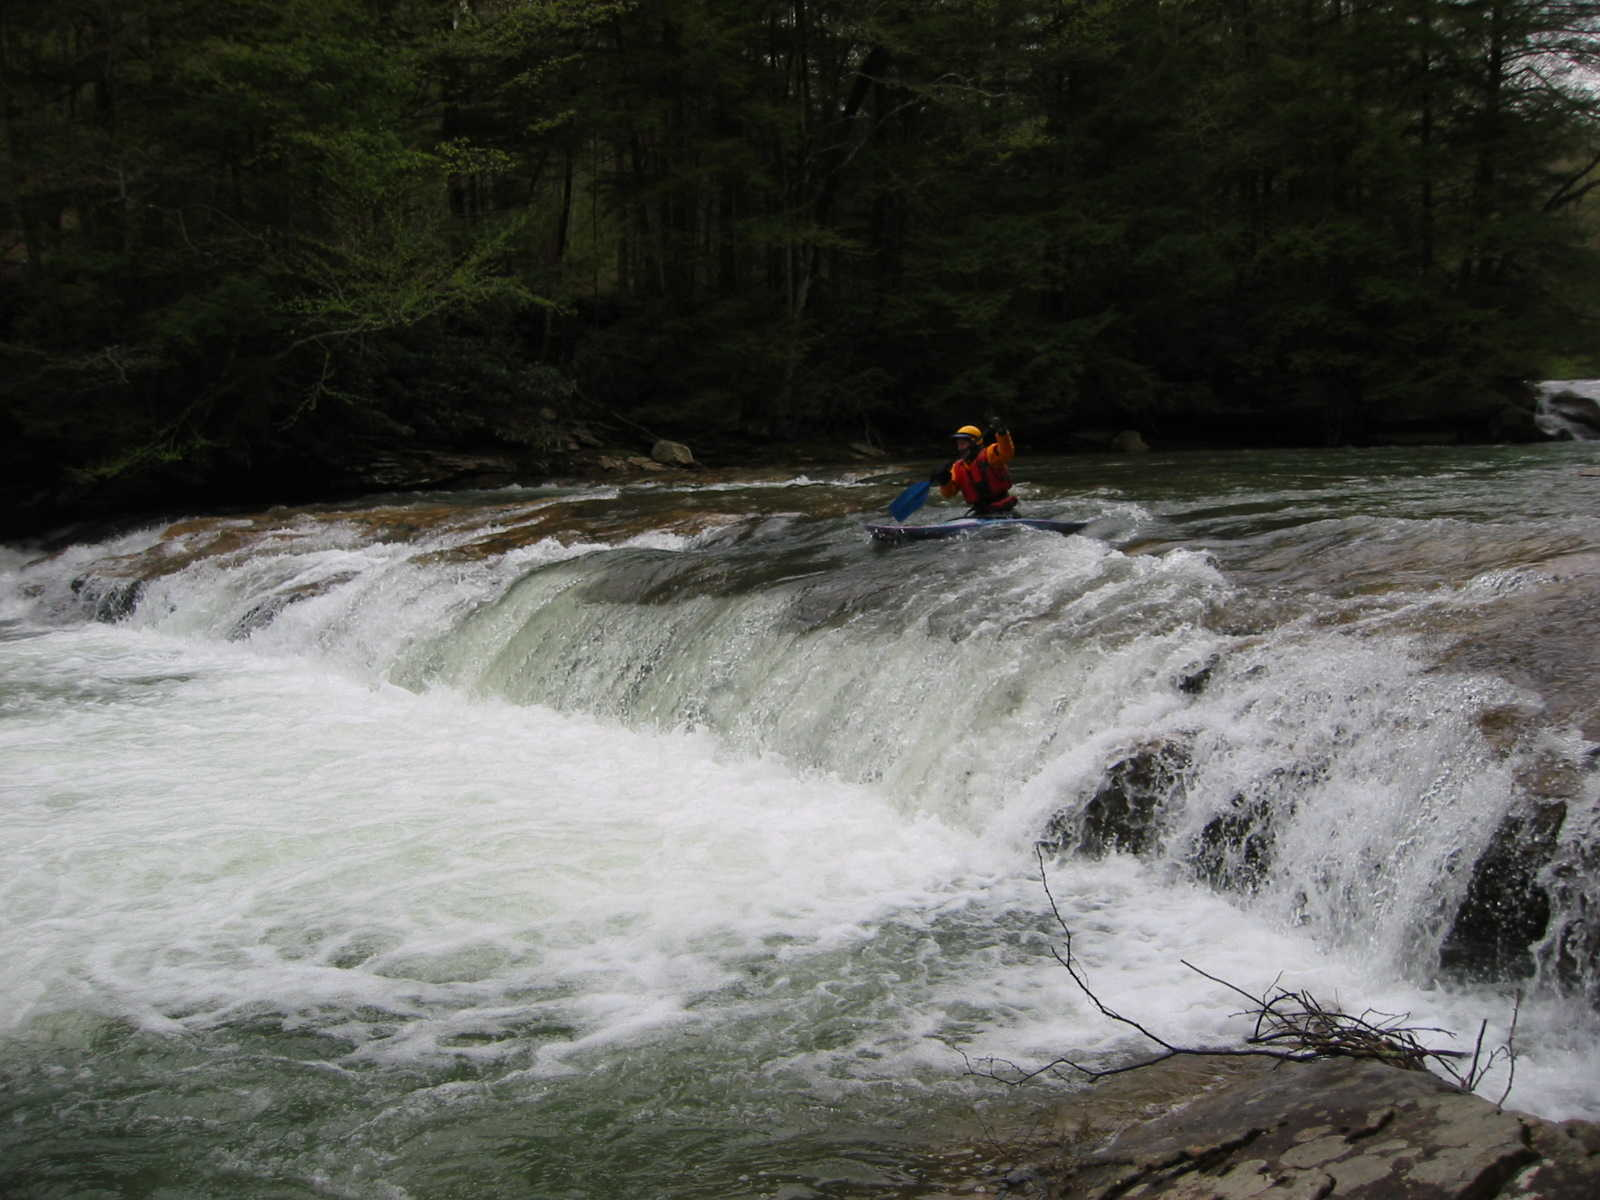 Scott Zetterstorm in Crapper Falls (Photo by Scott Gravatt - 4/27/04)